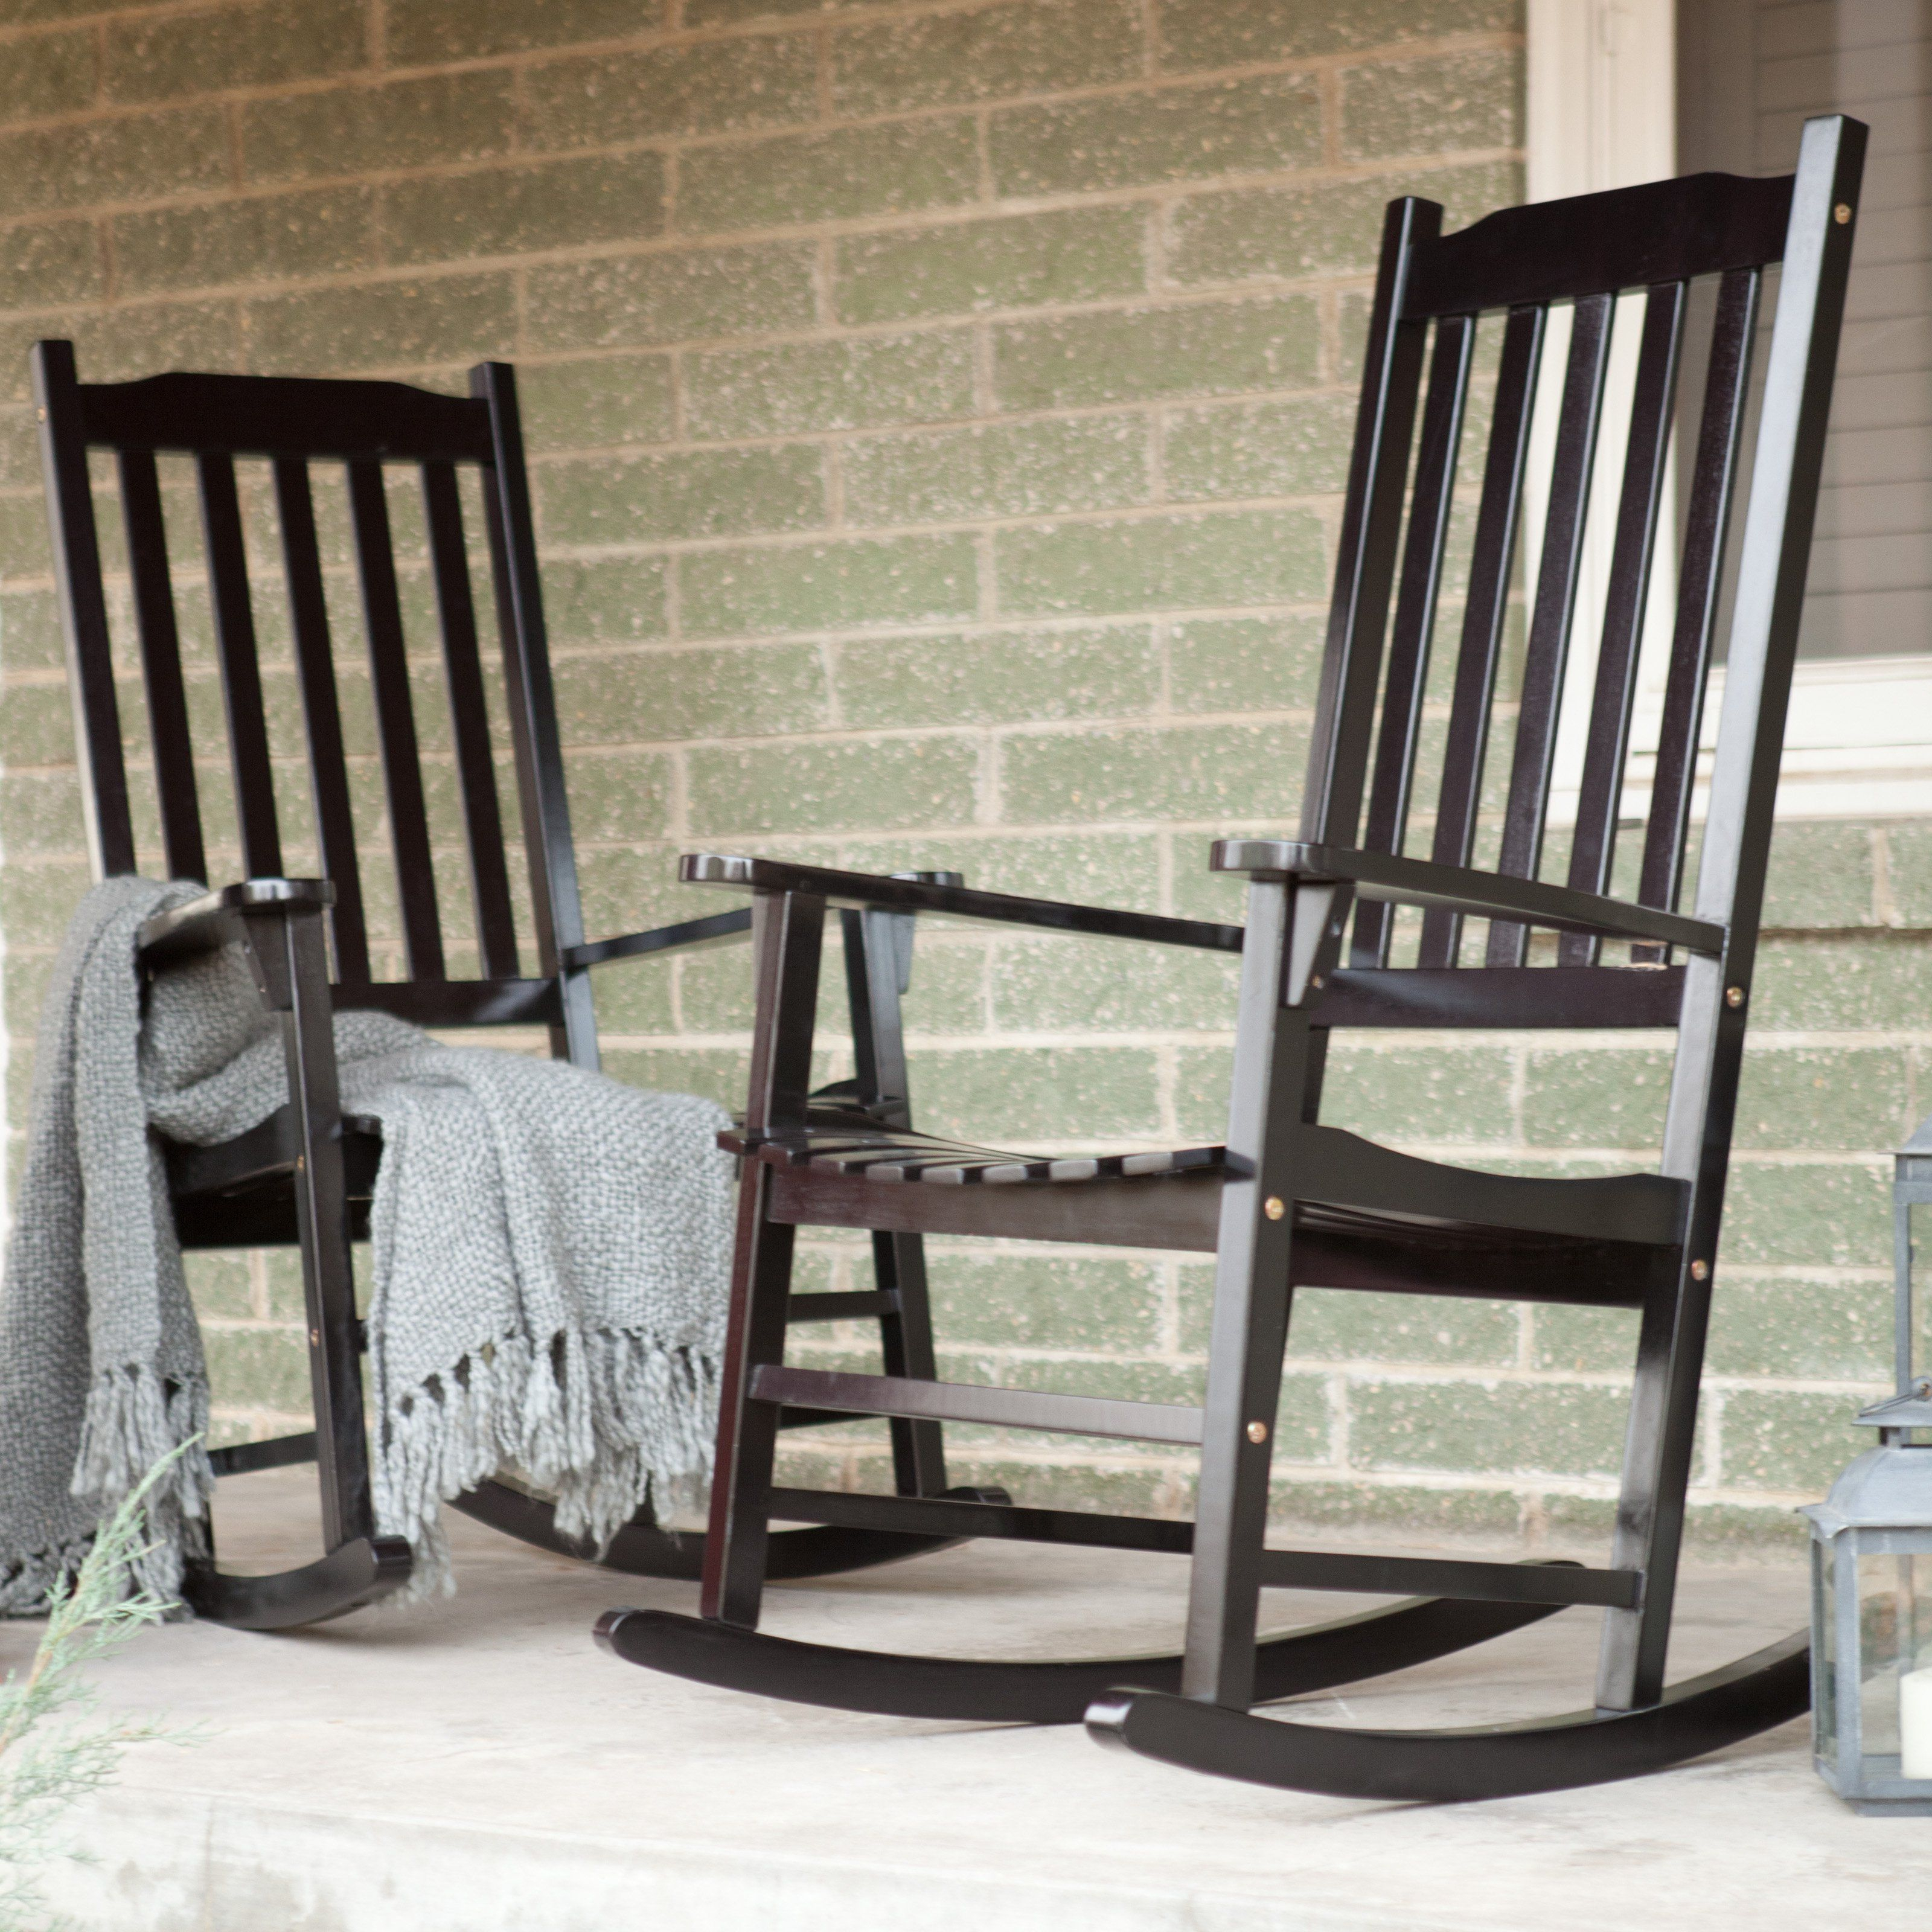 Coral Coast Indoor/outdoor Mission Slat Rocking Chairs Pertaining To Indoor / Outdoor Porch Slat Rocking Chairs (#8 of 20)